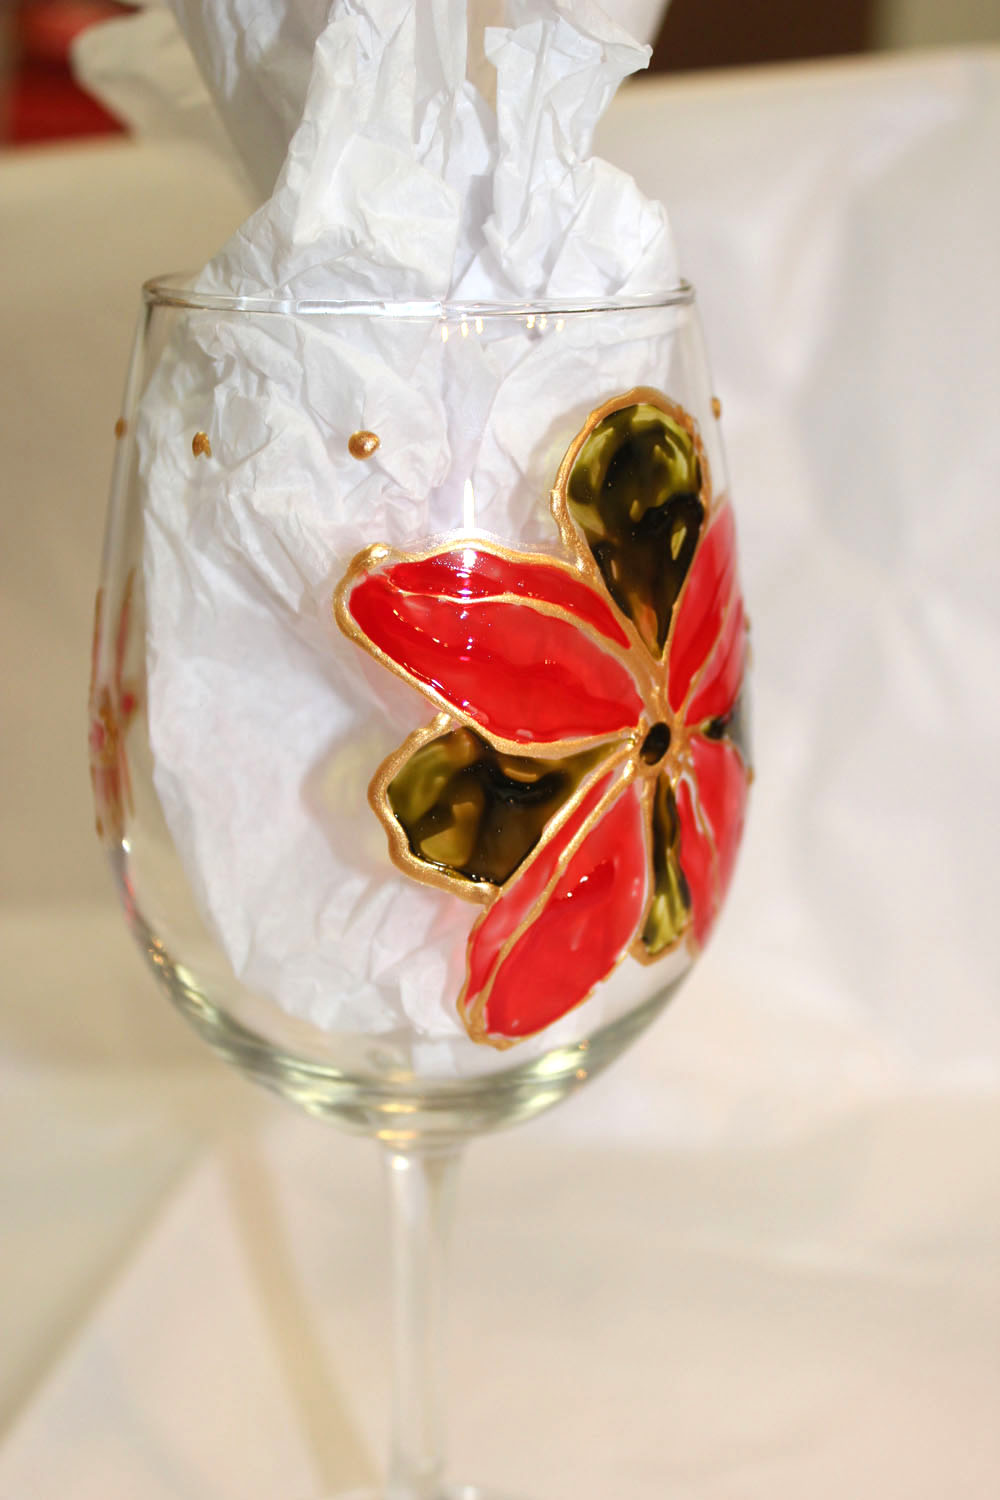 handpainted-wine-glass-flower-art-by-tjm-studio-greensboro-img_4682.jpg